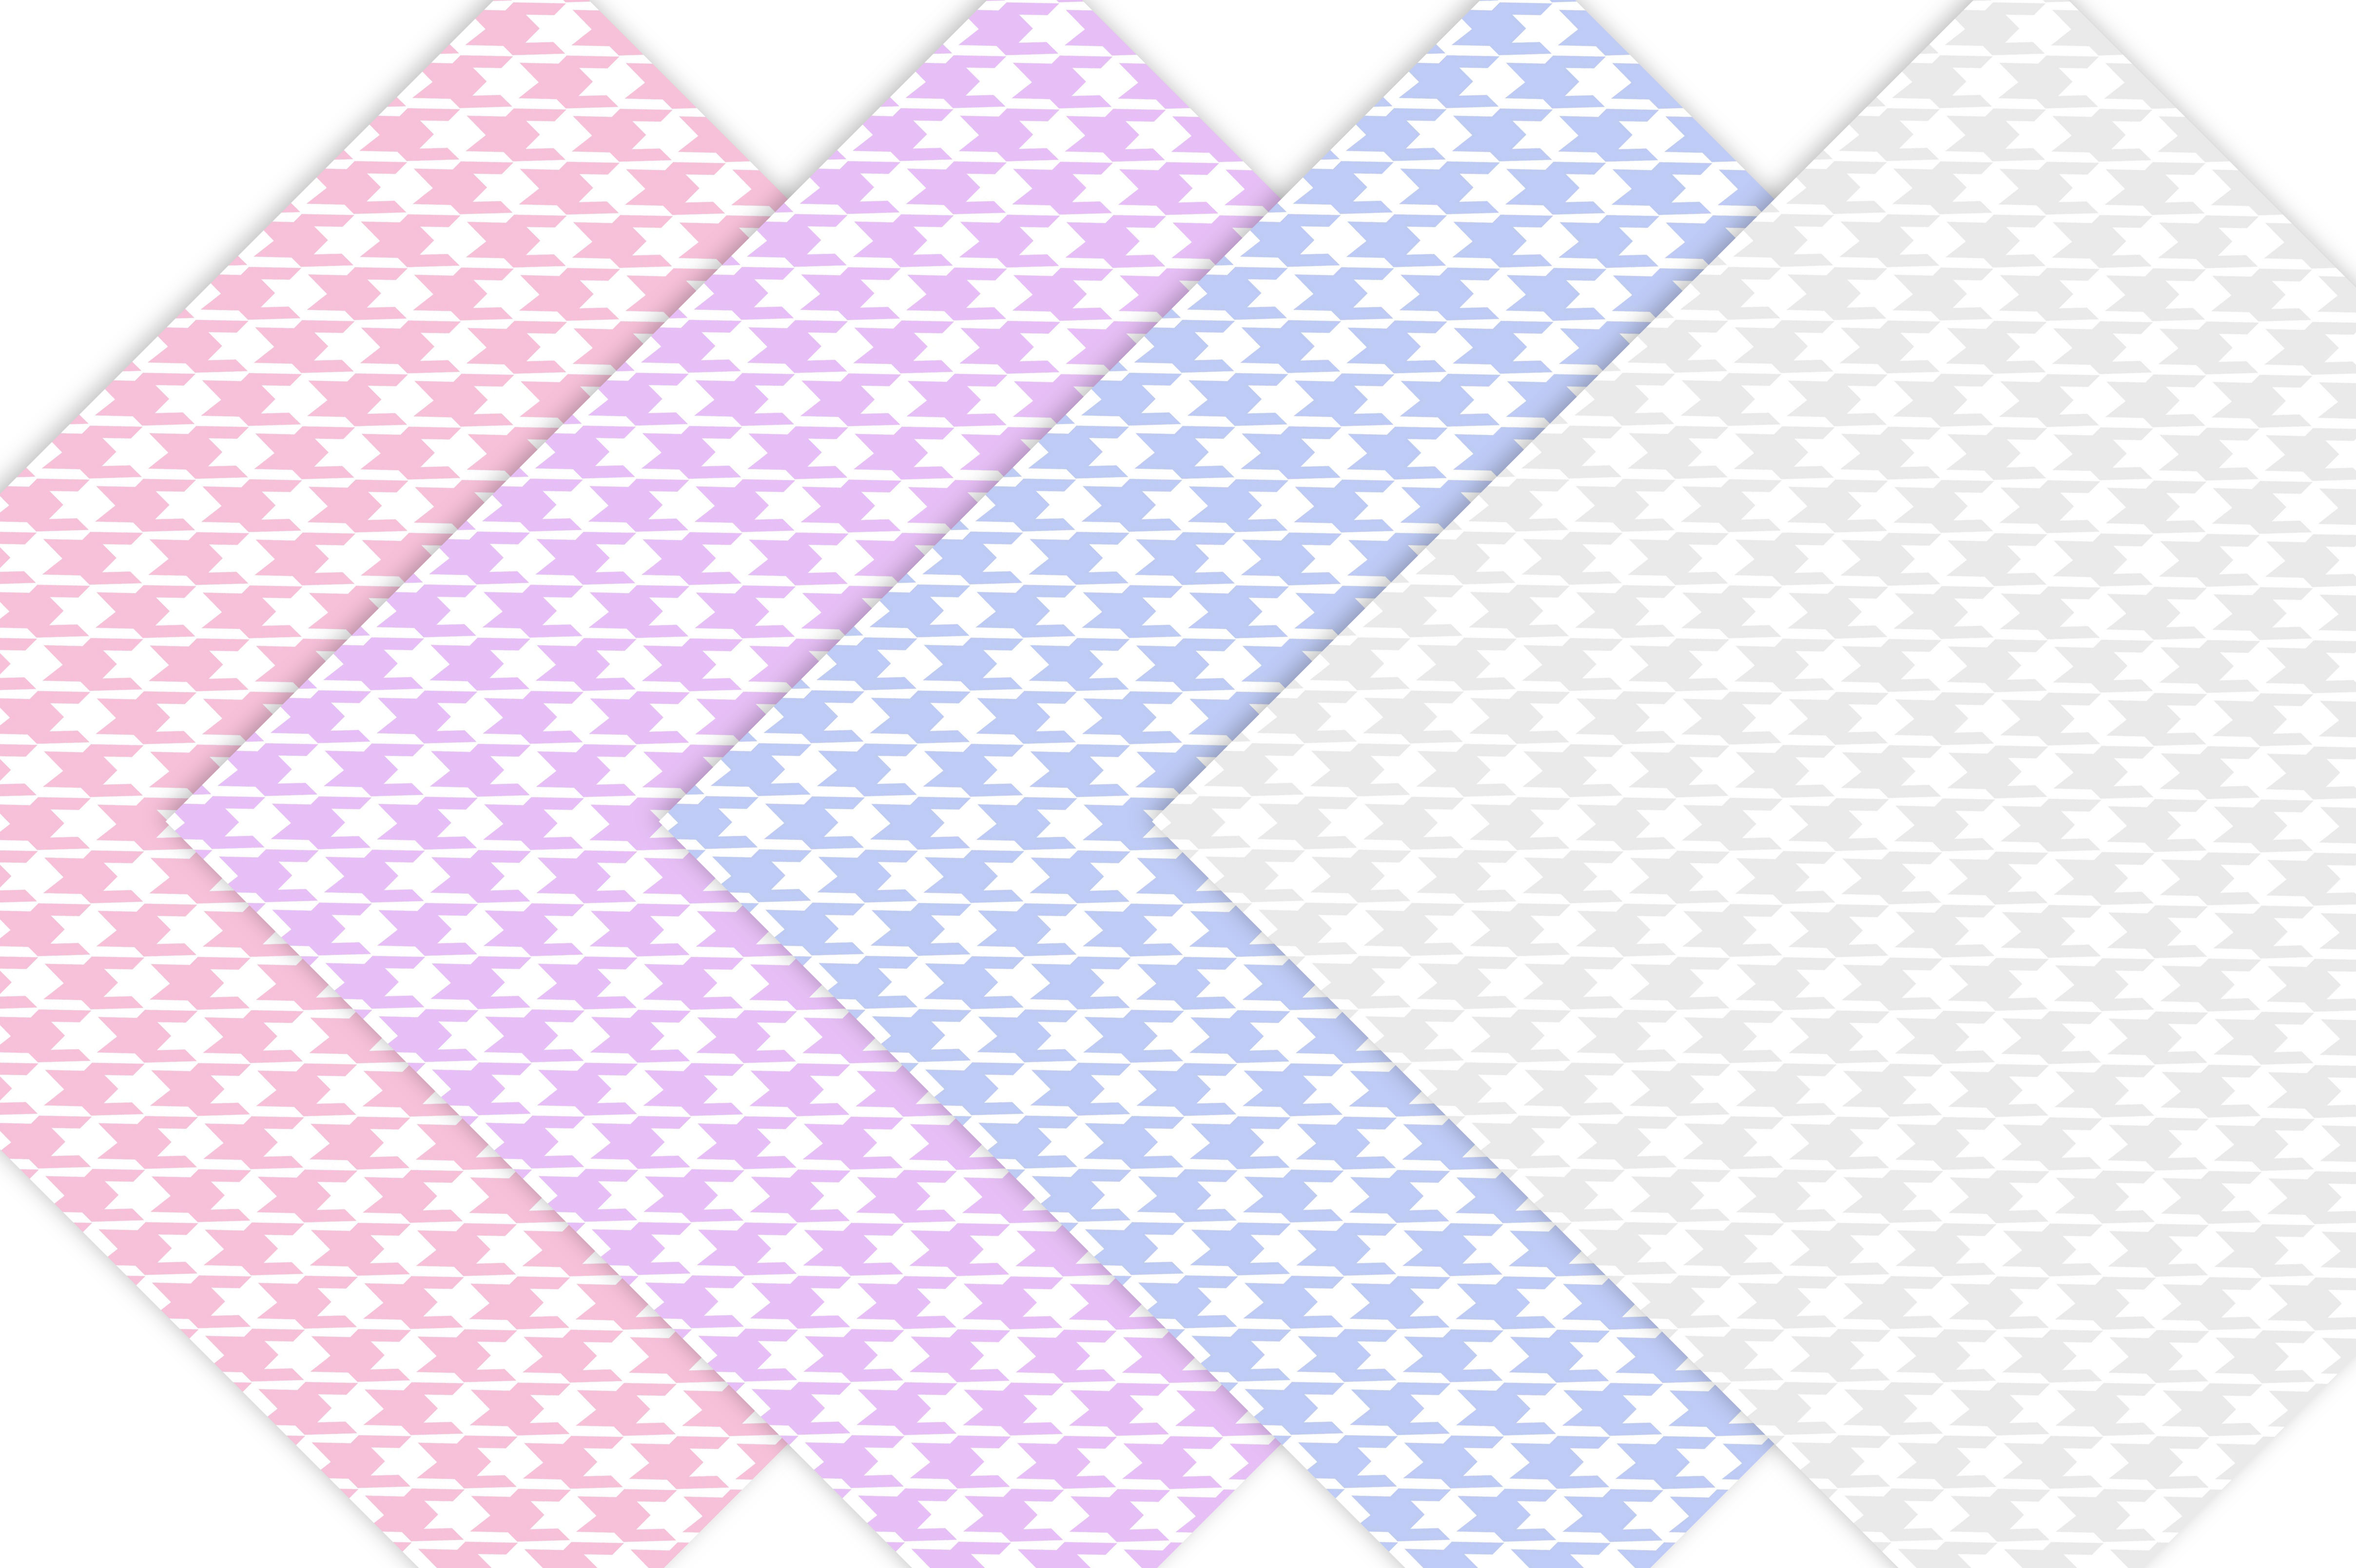 Pastel Houndstooth Digital Paper example image 6